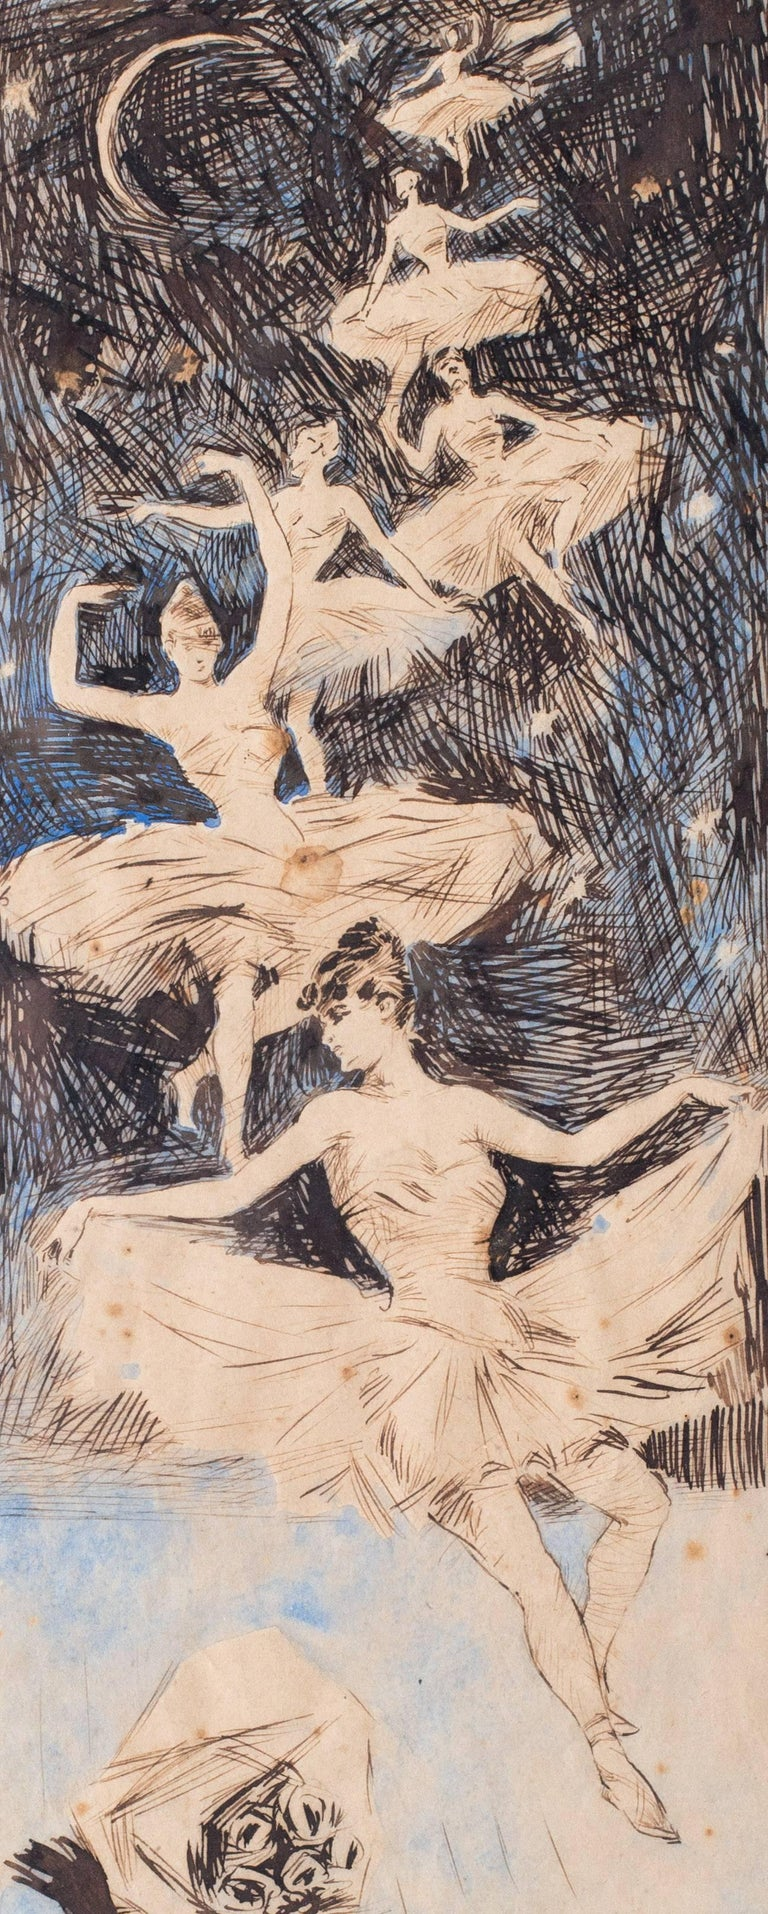 Attributed to Jules Cheret (French 1836 - 1932) A Ballerina dream sequence, Circa 1900s A beautifully delicate art nouveau depiction of ballerinas descending from the starry sky above.   Pen, ink and watercolour on paper 10 x 5.3/8in. (25.4 x